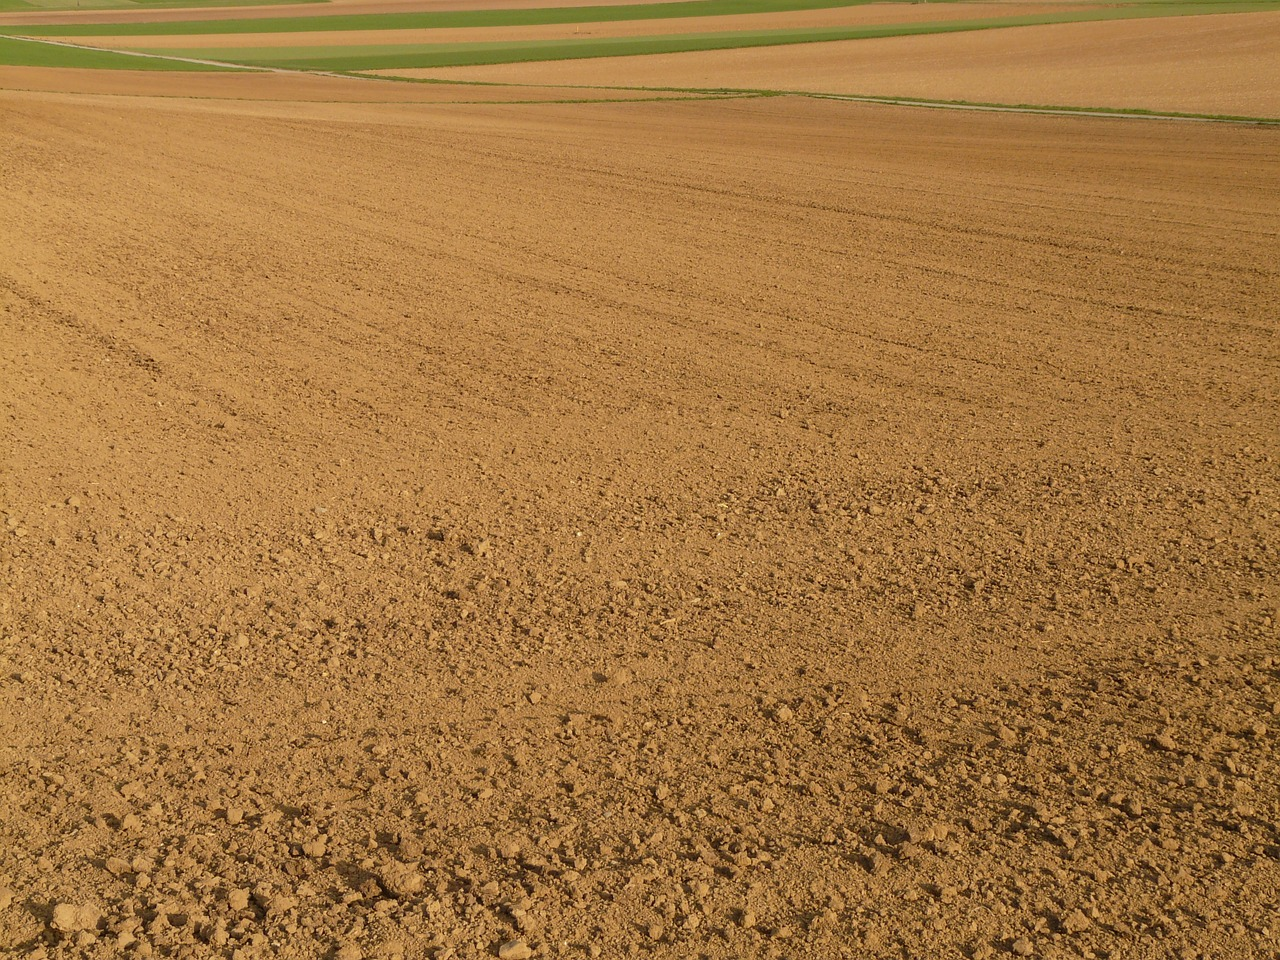 field arable agriculture free photo